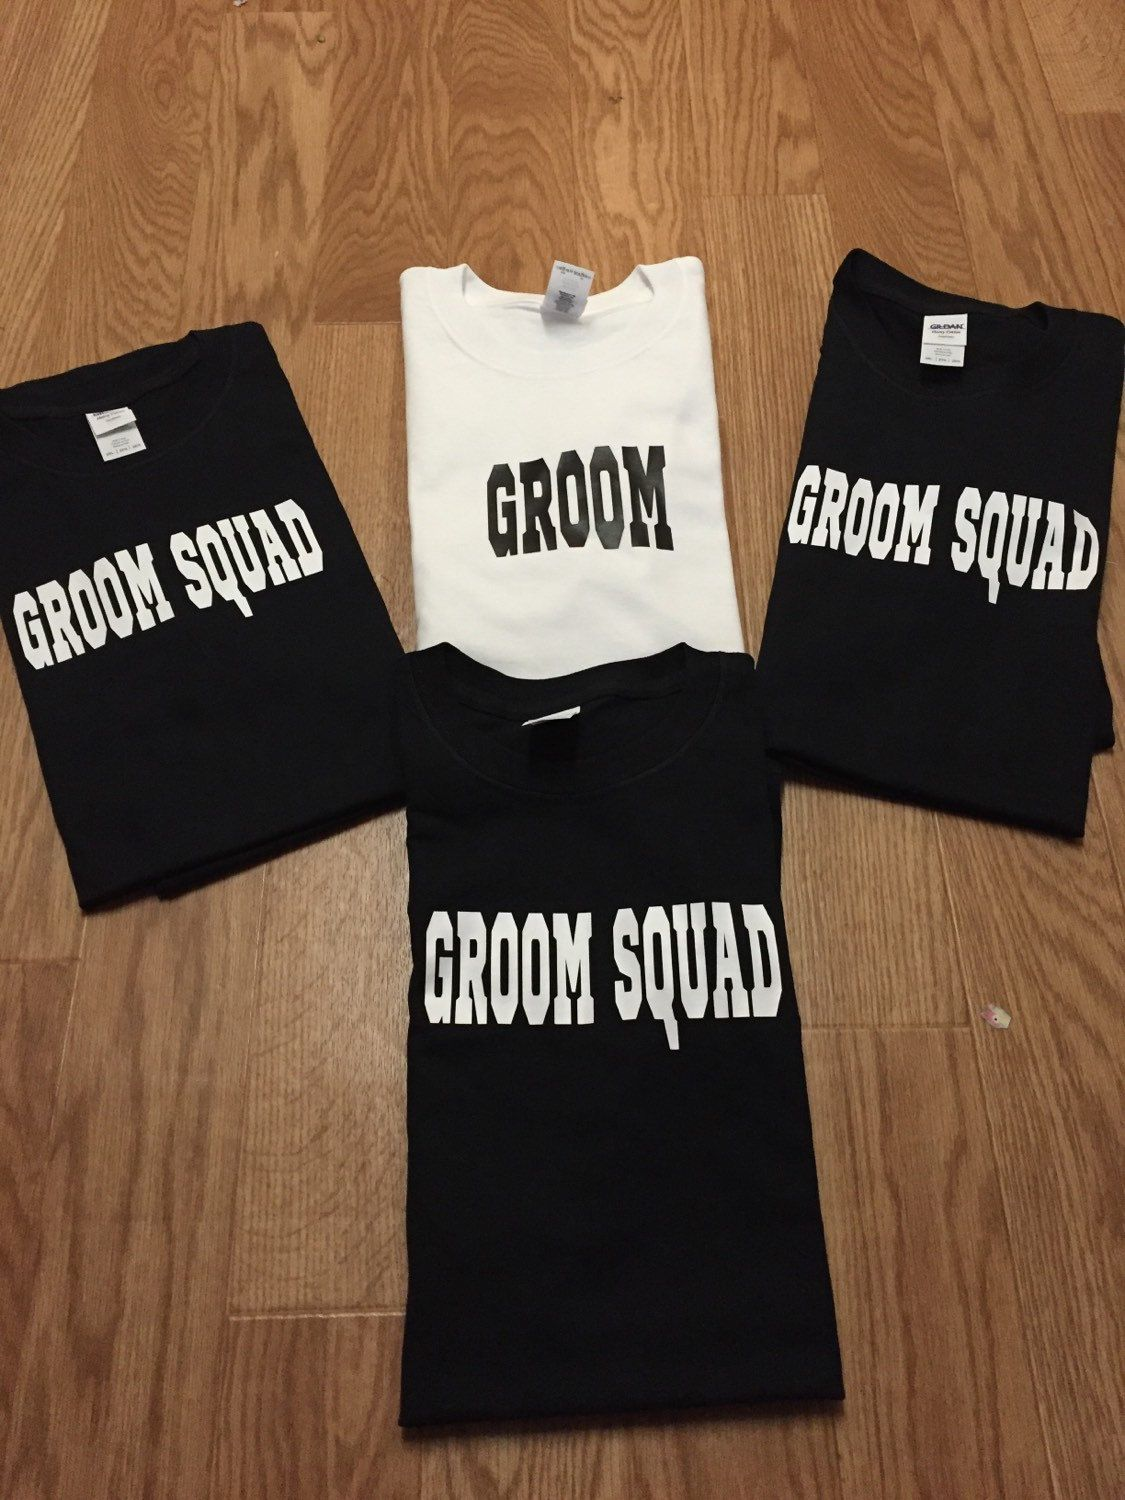 53fe9327f1 Groom Squad Bachelor T-shirts. Bachelor Party Shirts. Best Man Shirts.  Groomsmen Shirts. Bridal Party Shirts. Wedding. Affordable Price. by ...